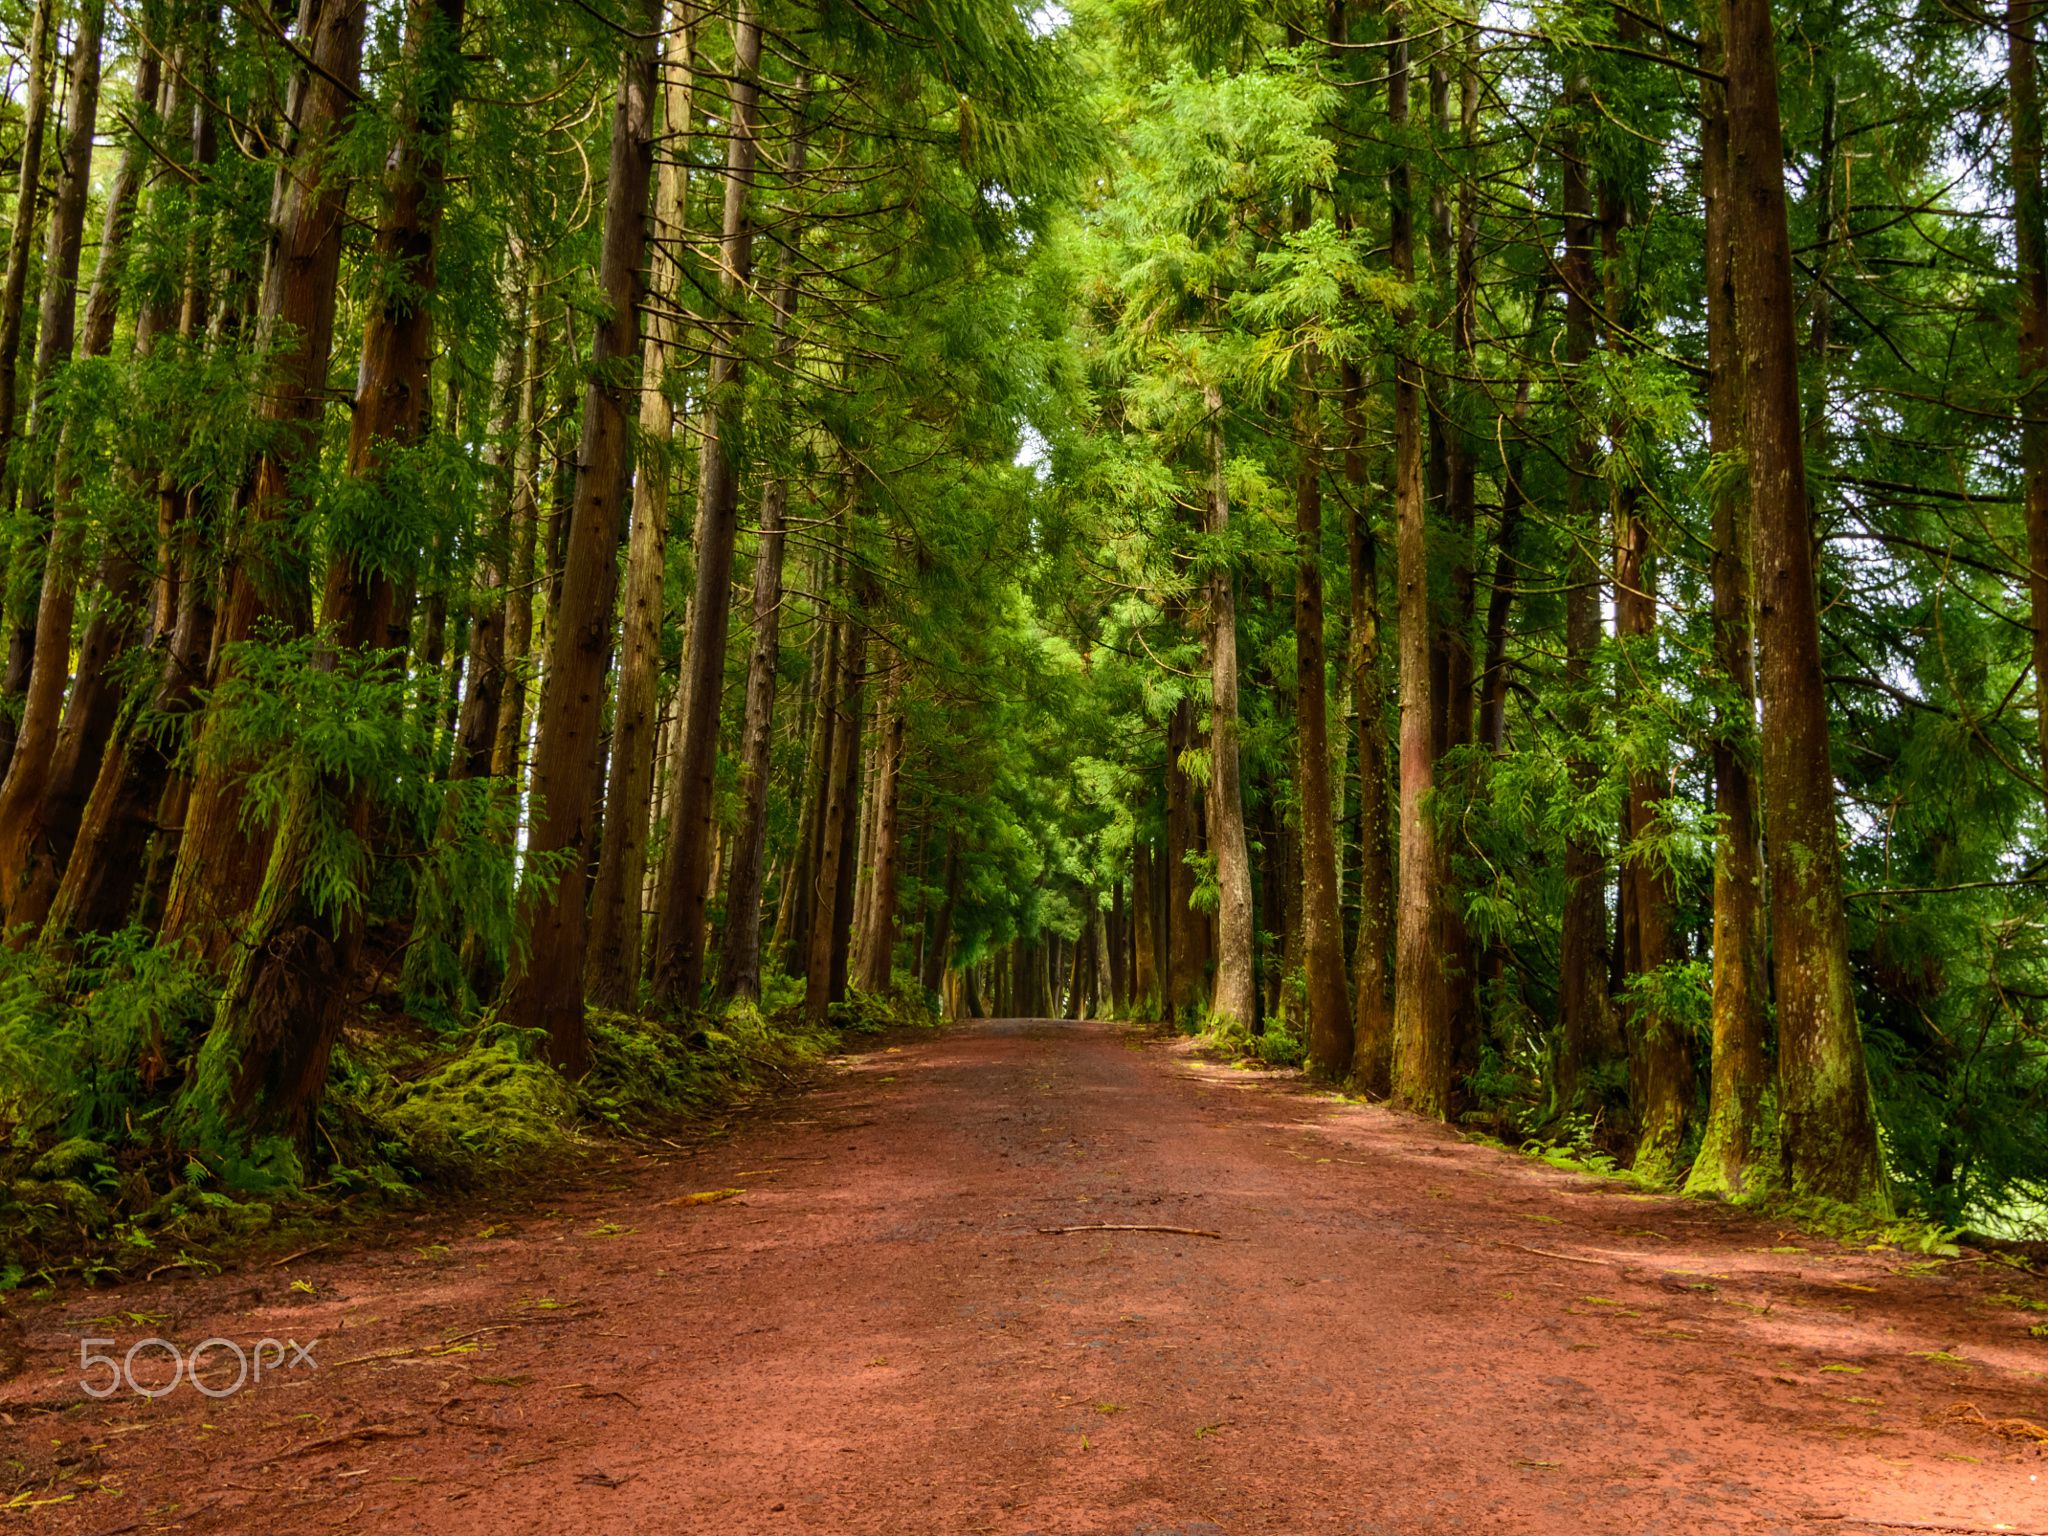 The Azorean Road - Like everywere the roads are made with the matereals the Earth gives to Us. In Azores its used red vulcanic scoria to make some of the less important interior roads, making this beautiful  green and red contrast.